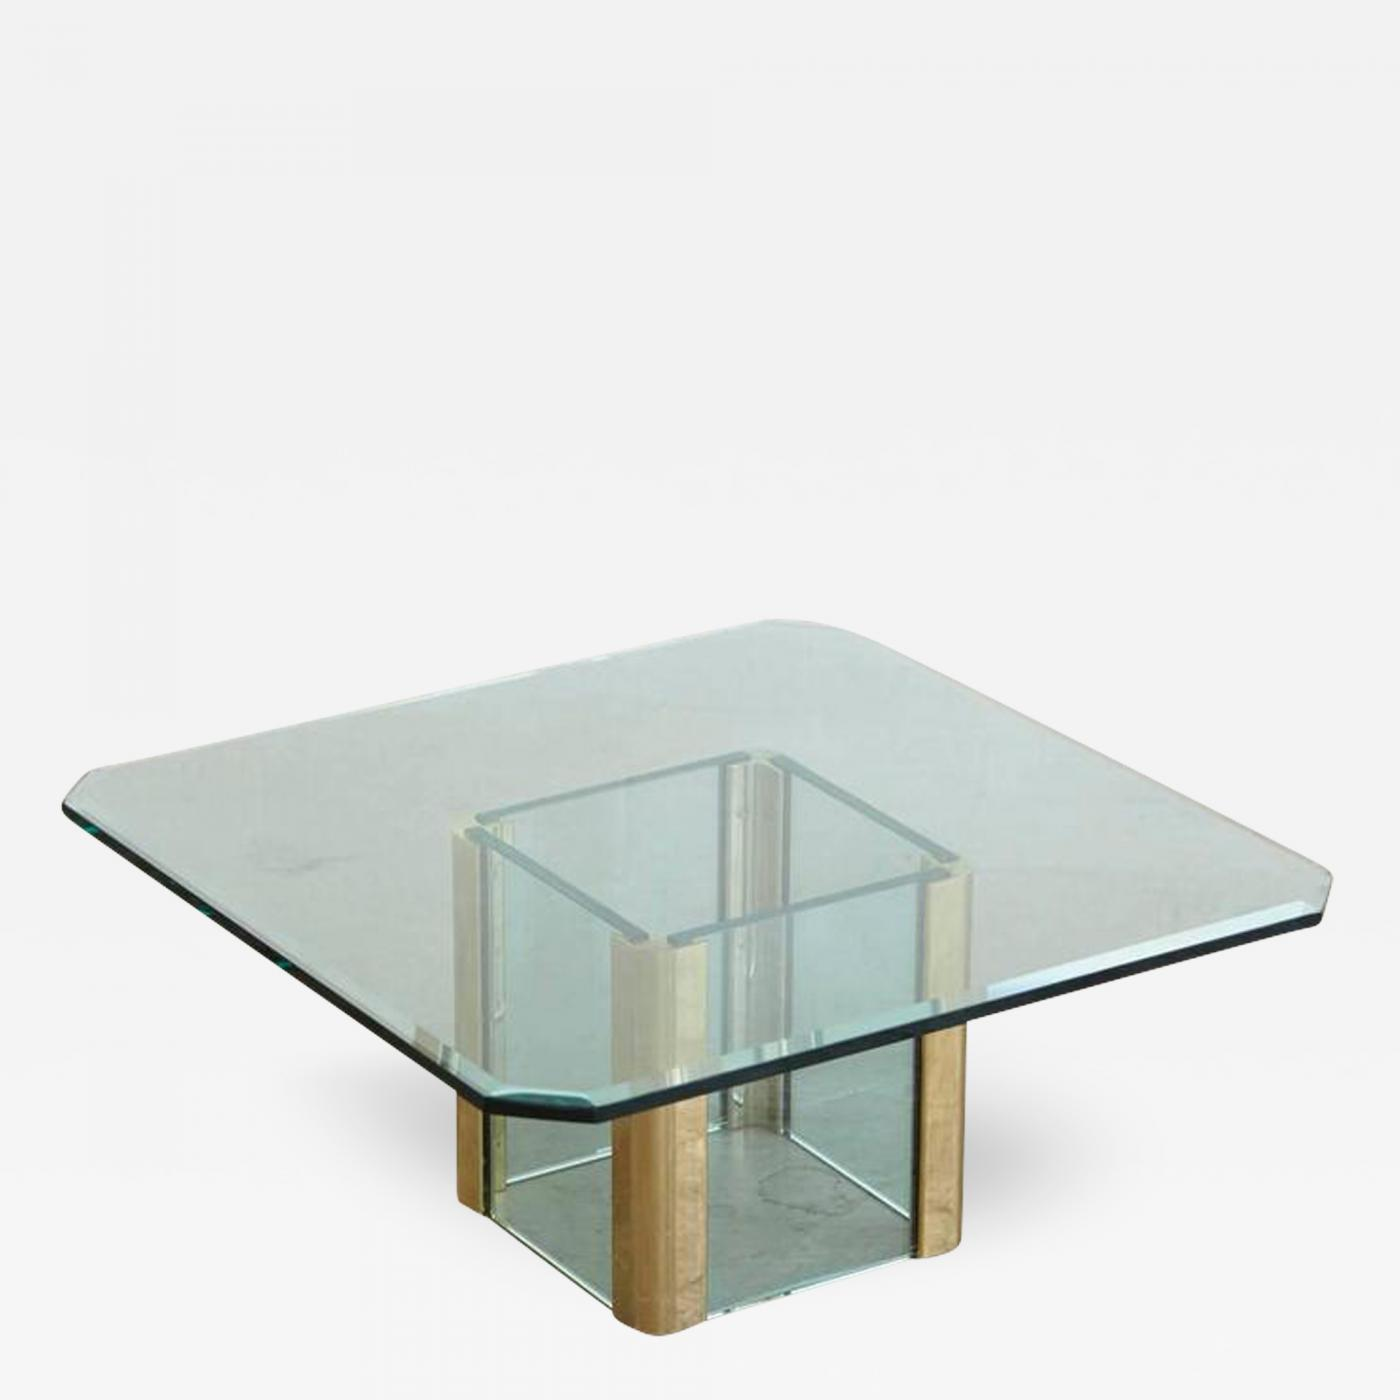 Leon rosen brass coffee table with an octagonal beveled glass listings furniture tables coffee tables geotapseo Choice Image